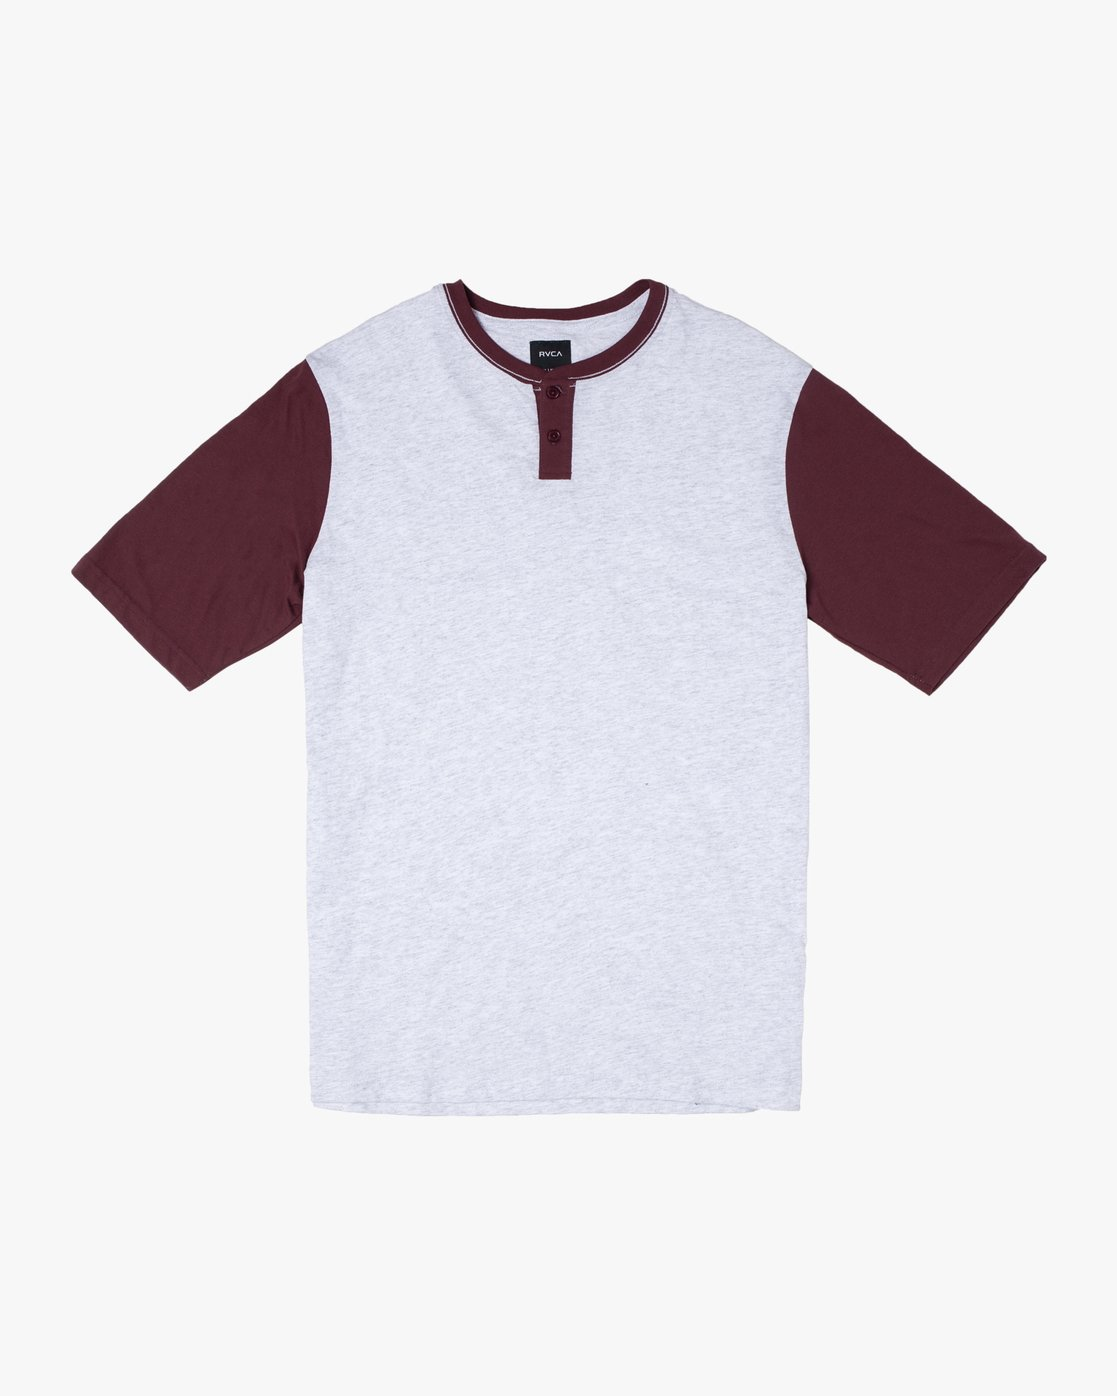 0 PICK UP HENLEY KNIT TOP White M9591RPU RVCA